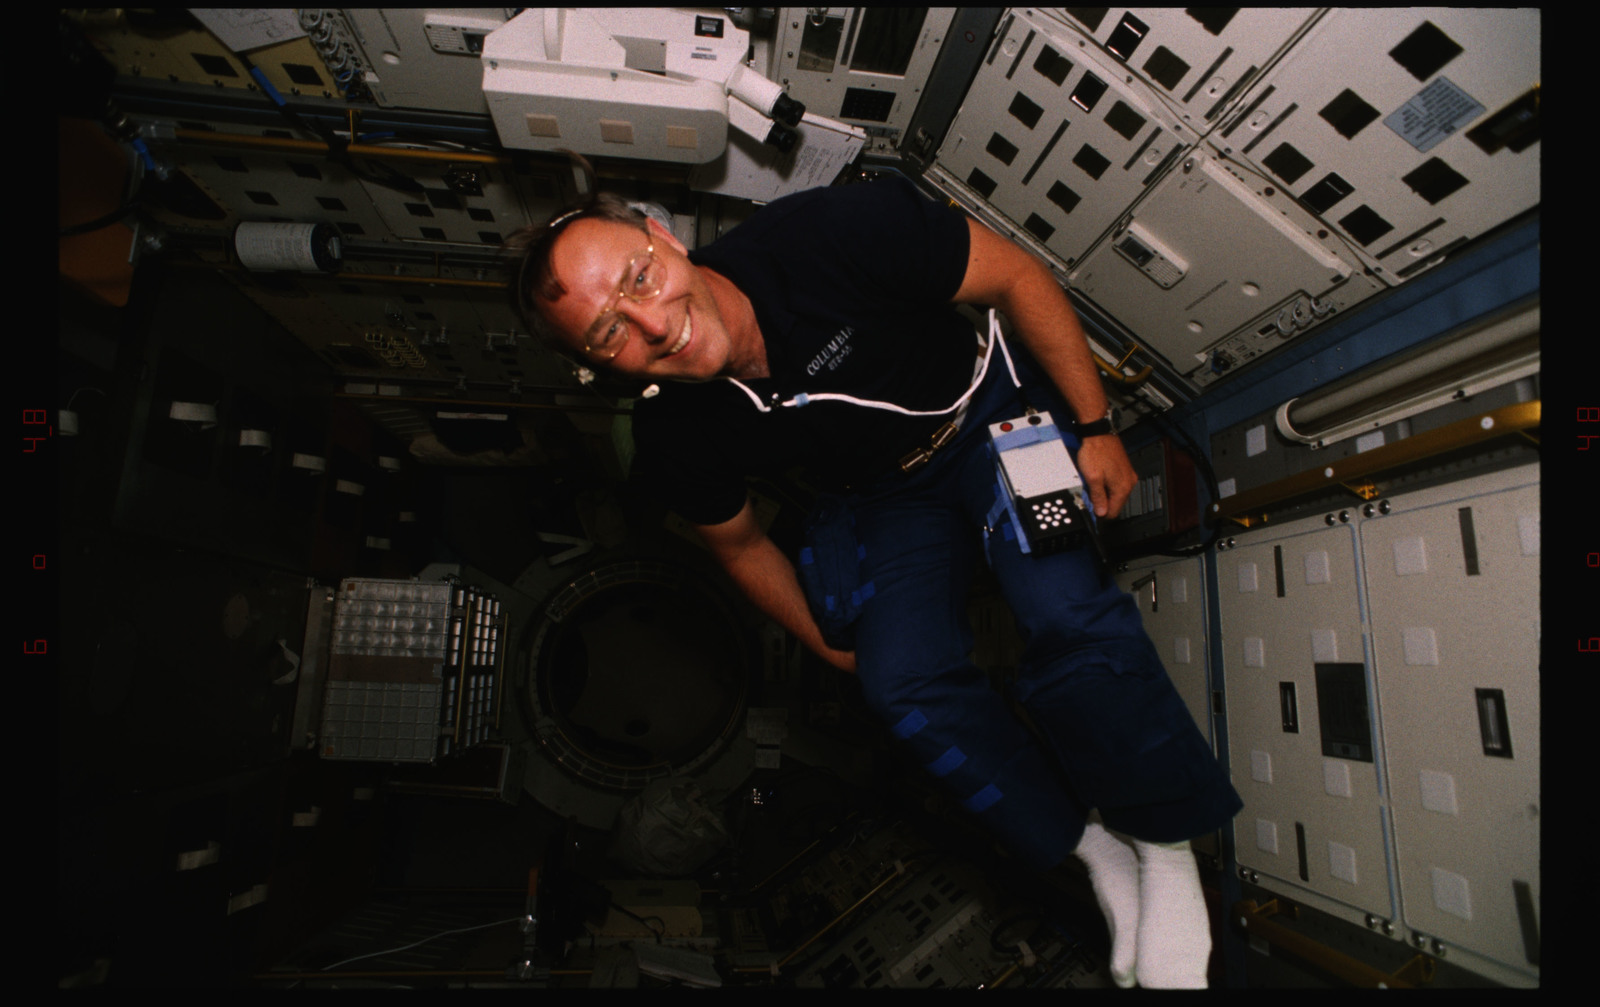 STS055-228-007 - STS-055 - Candid views of a crewmember in the D-2 Spacelab.